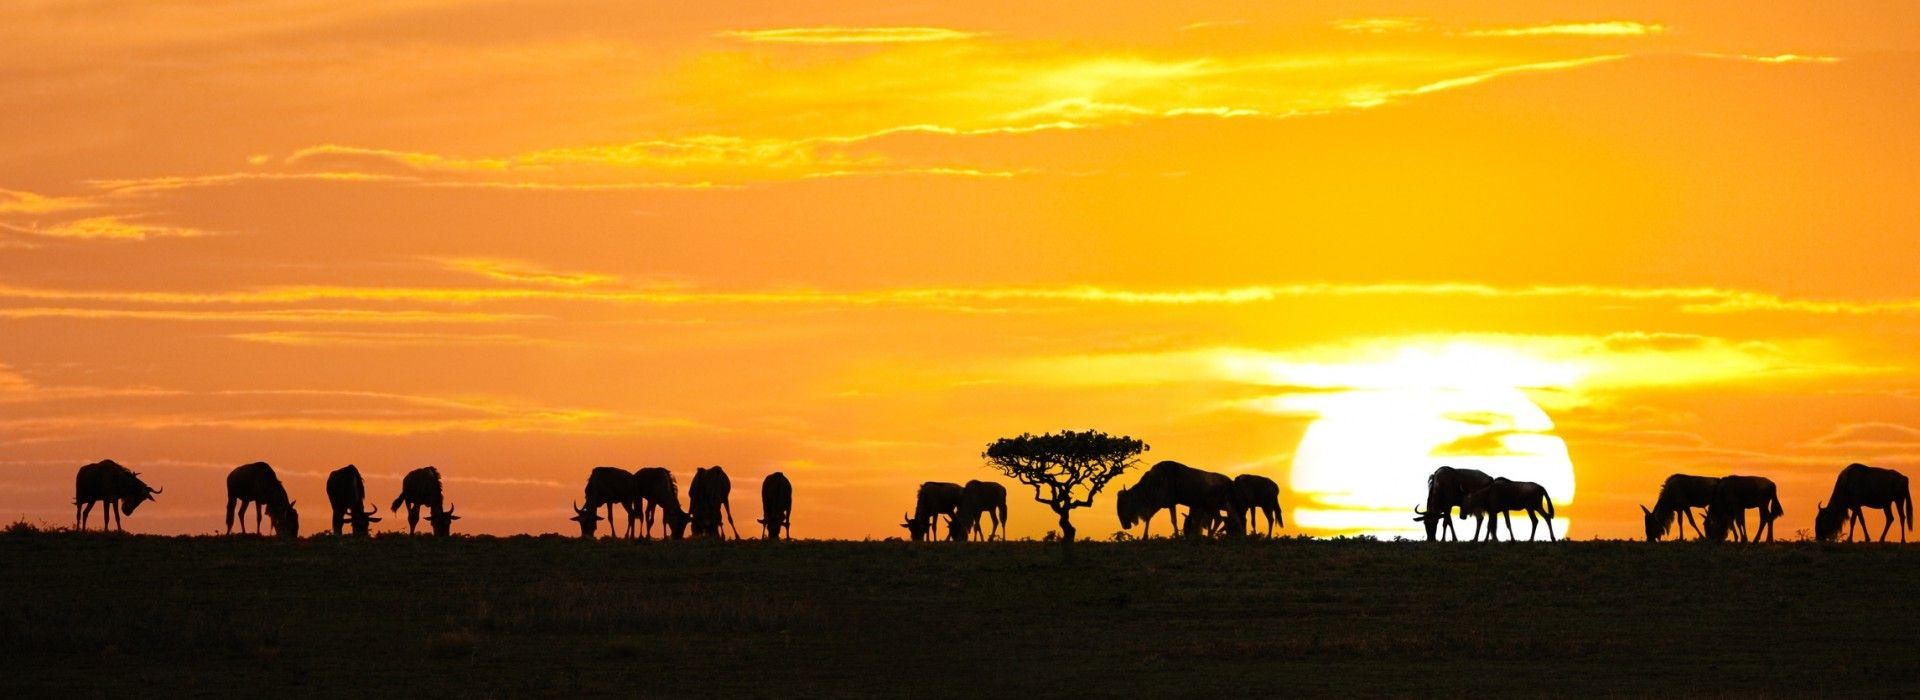 Sightseeing, attractions, culture and history Tours in Arusha